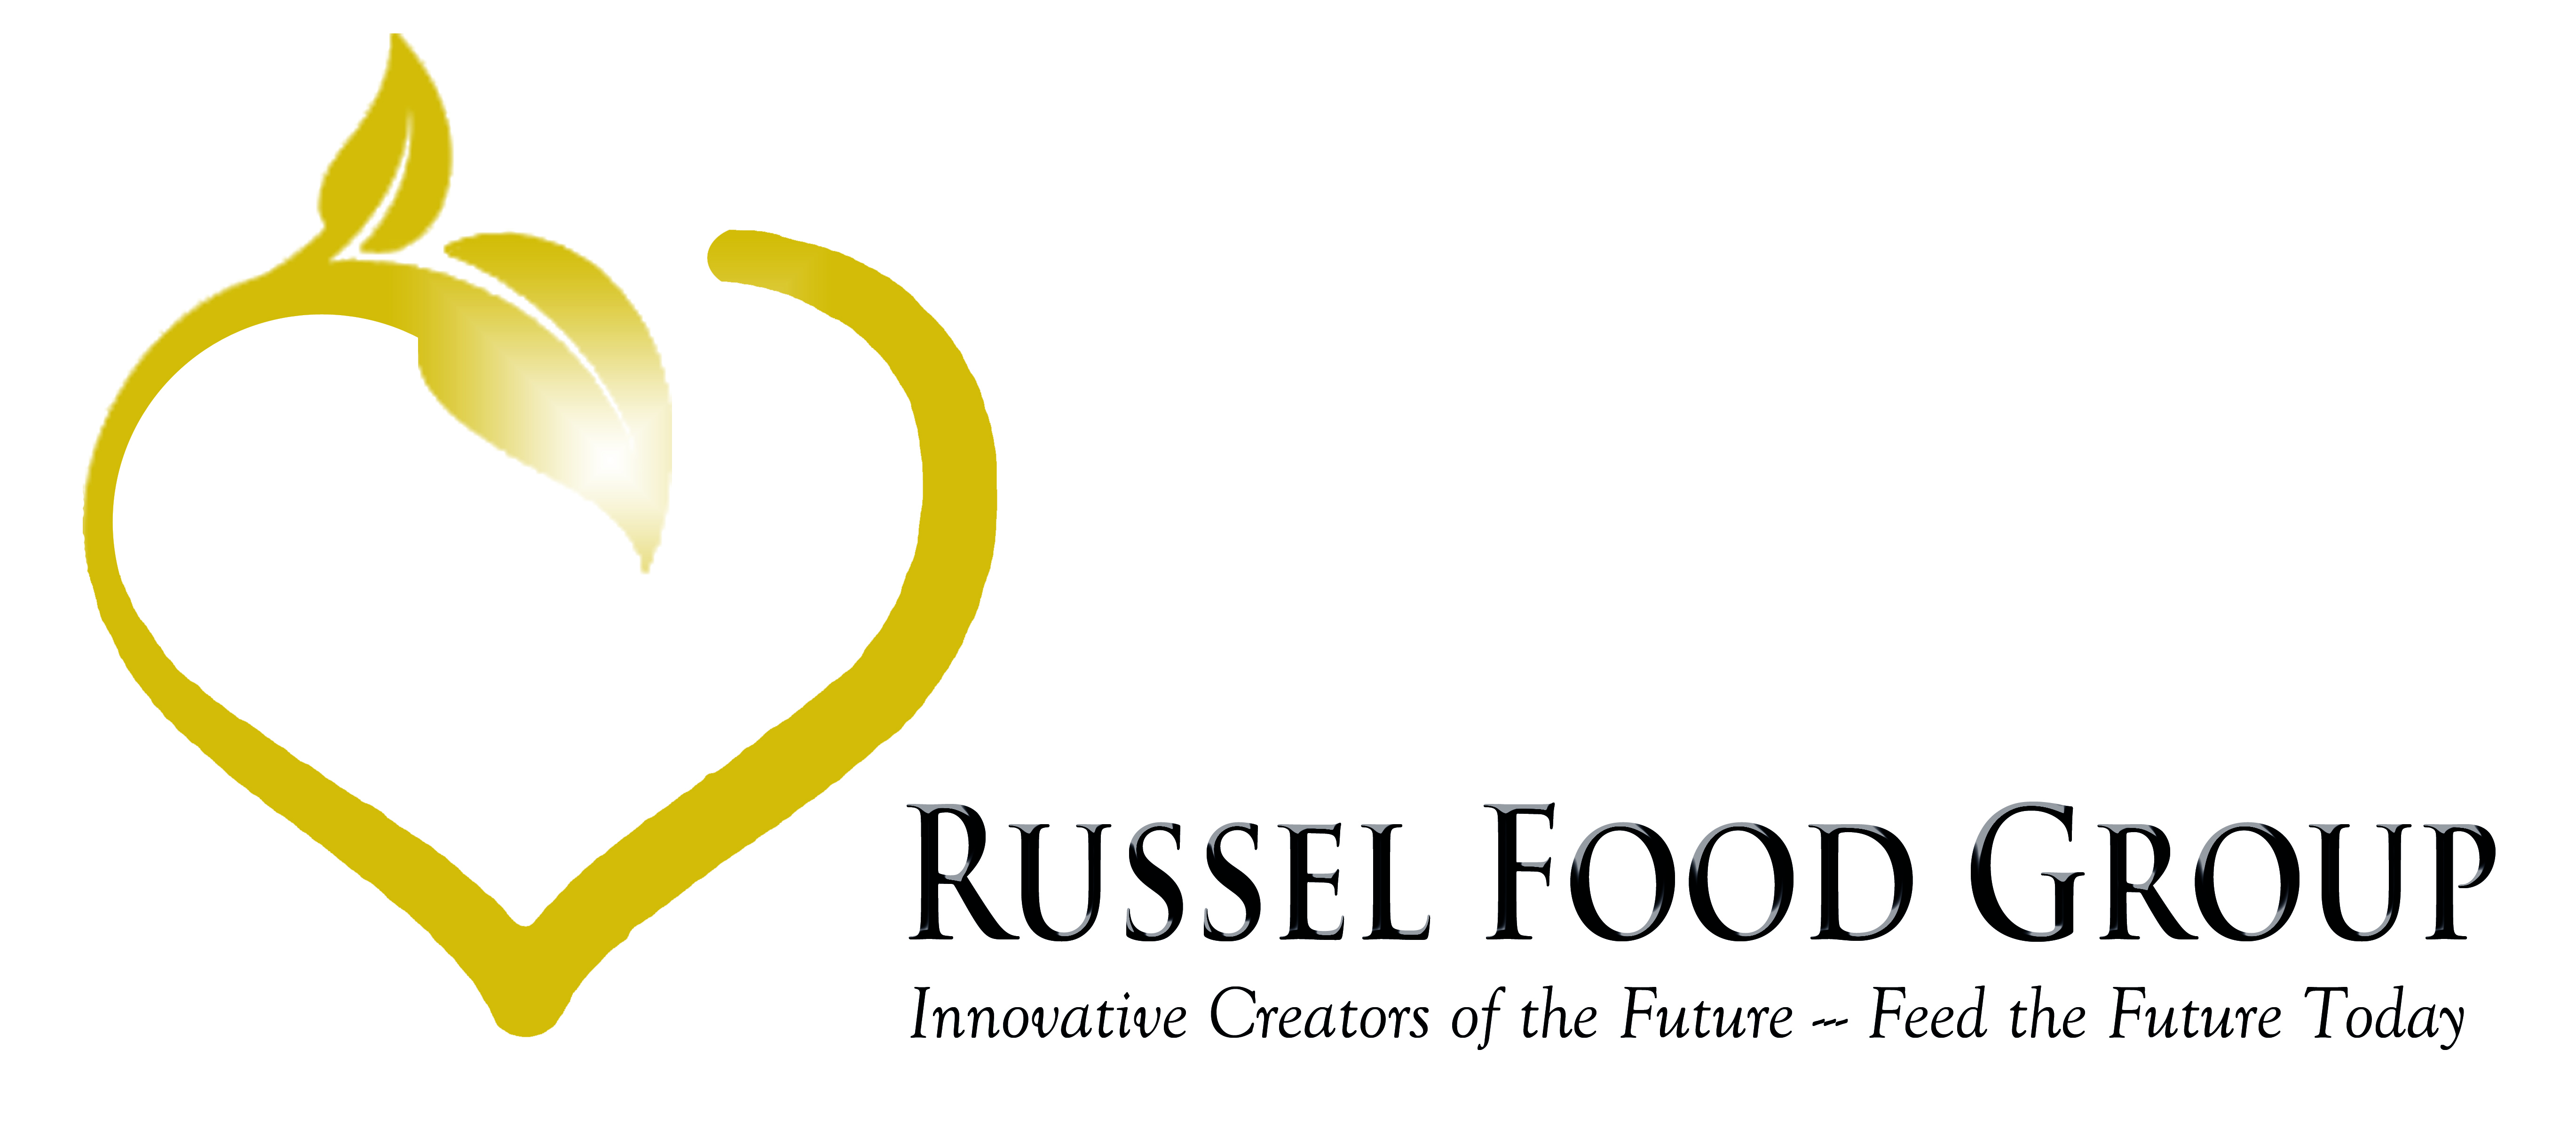 Russell Food Group